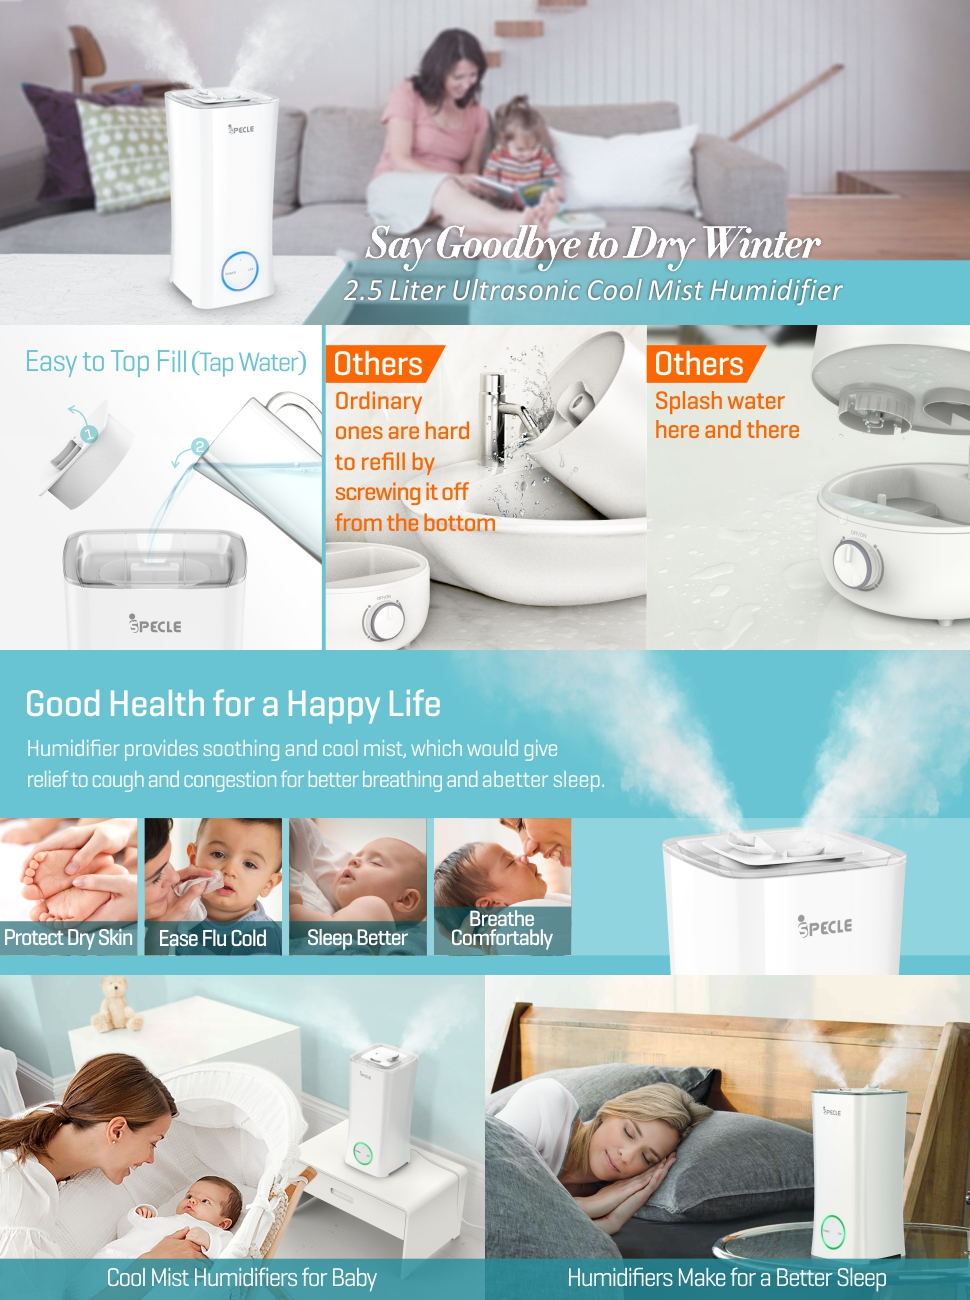 5 health benefits of humidifiers | TriStar Health